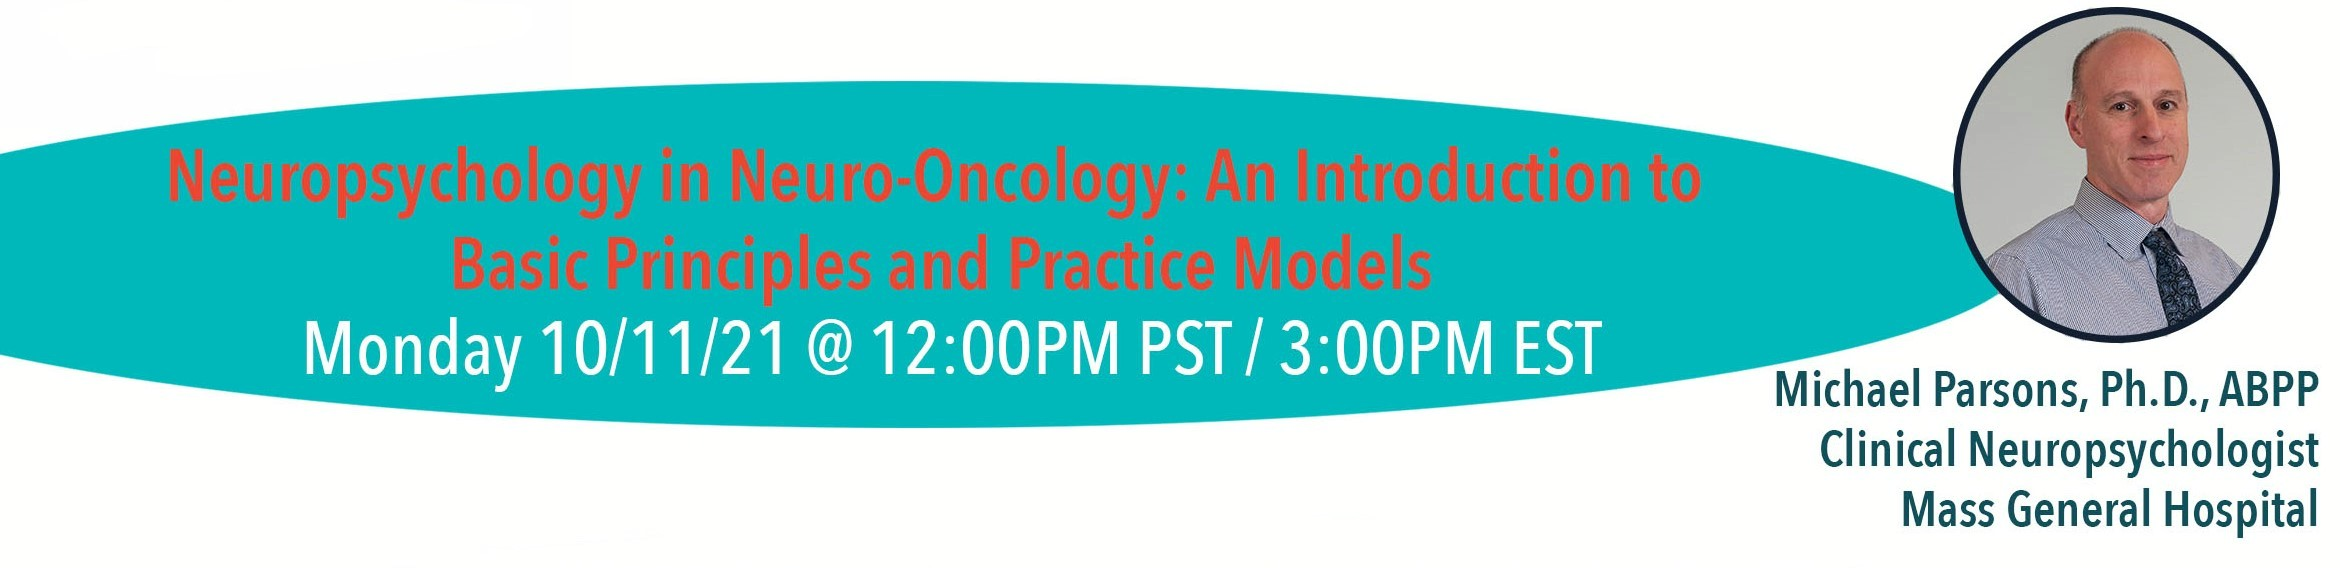 Neuropsychology in Neuro-oncology: An introduction to basic principles and practice models with Dr. Michael Parsons